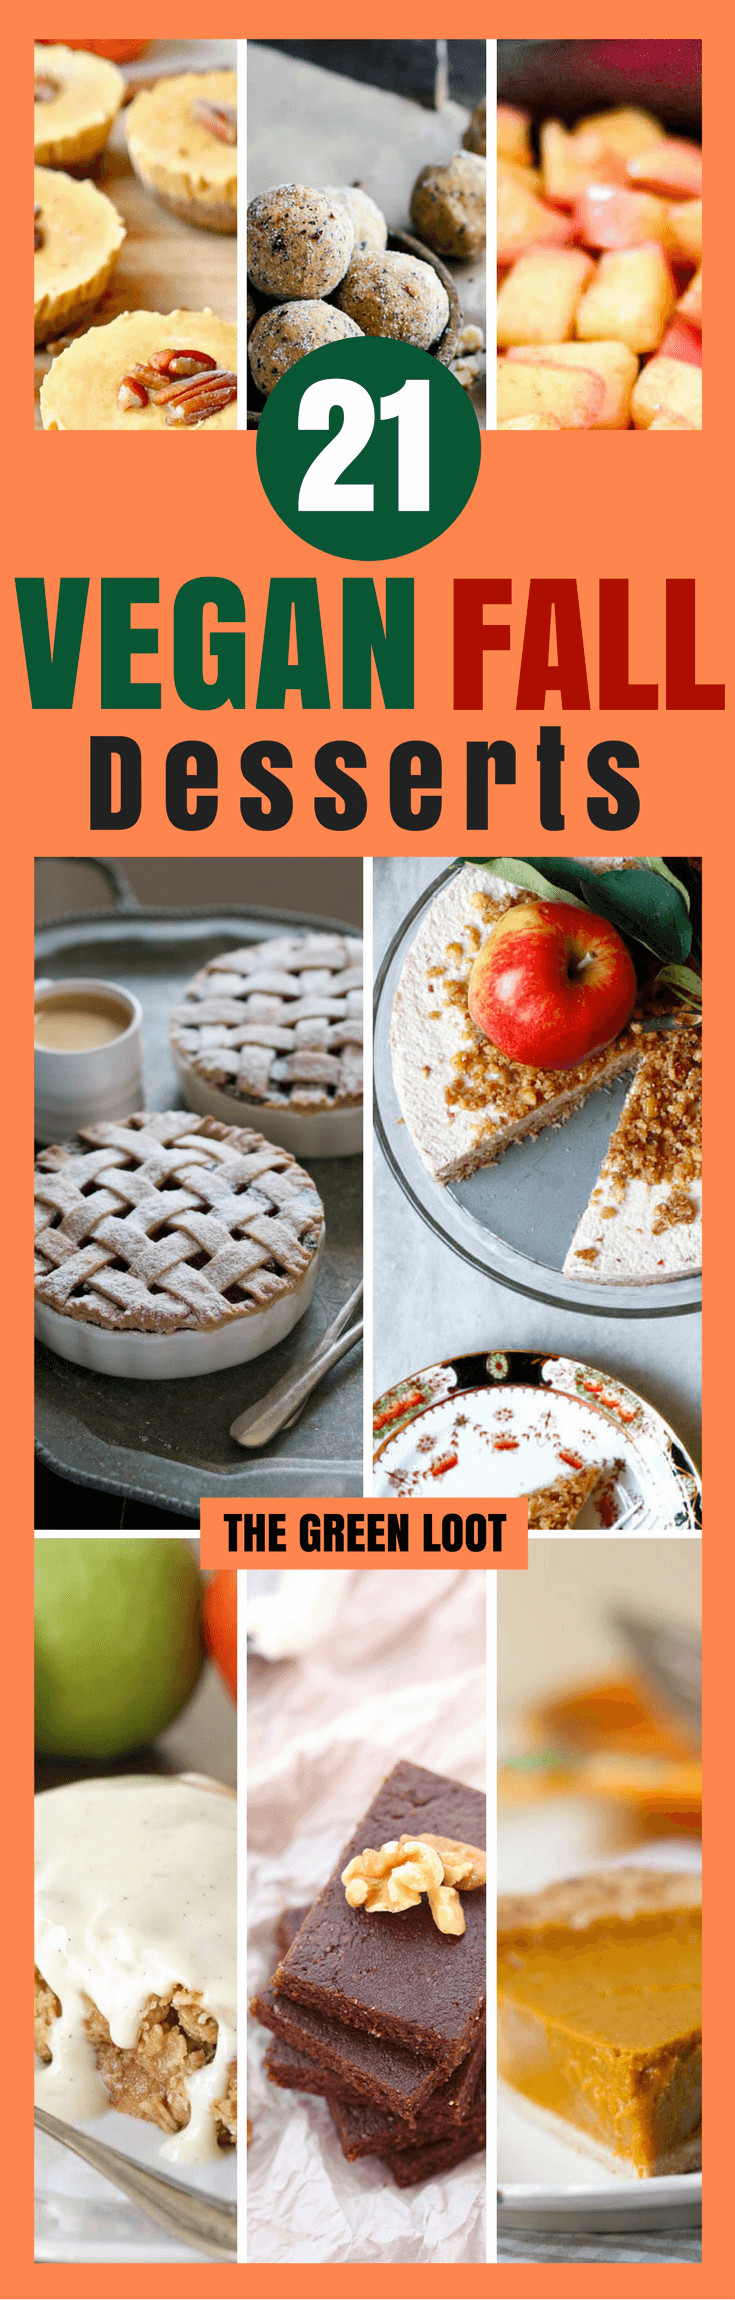 Yummy Fall Desserts  21 Super Yummy Vegan Fall Desserts You Have to Make